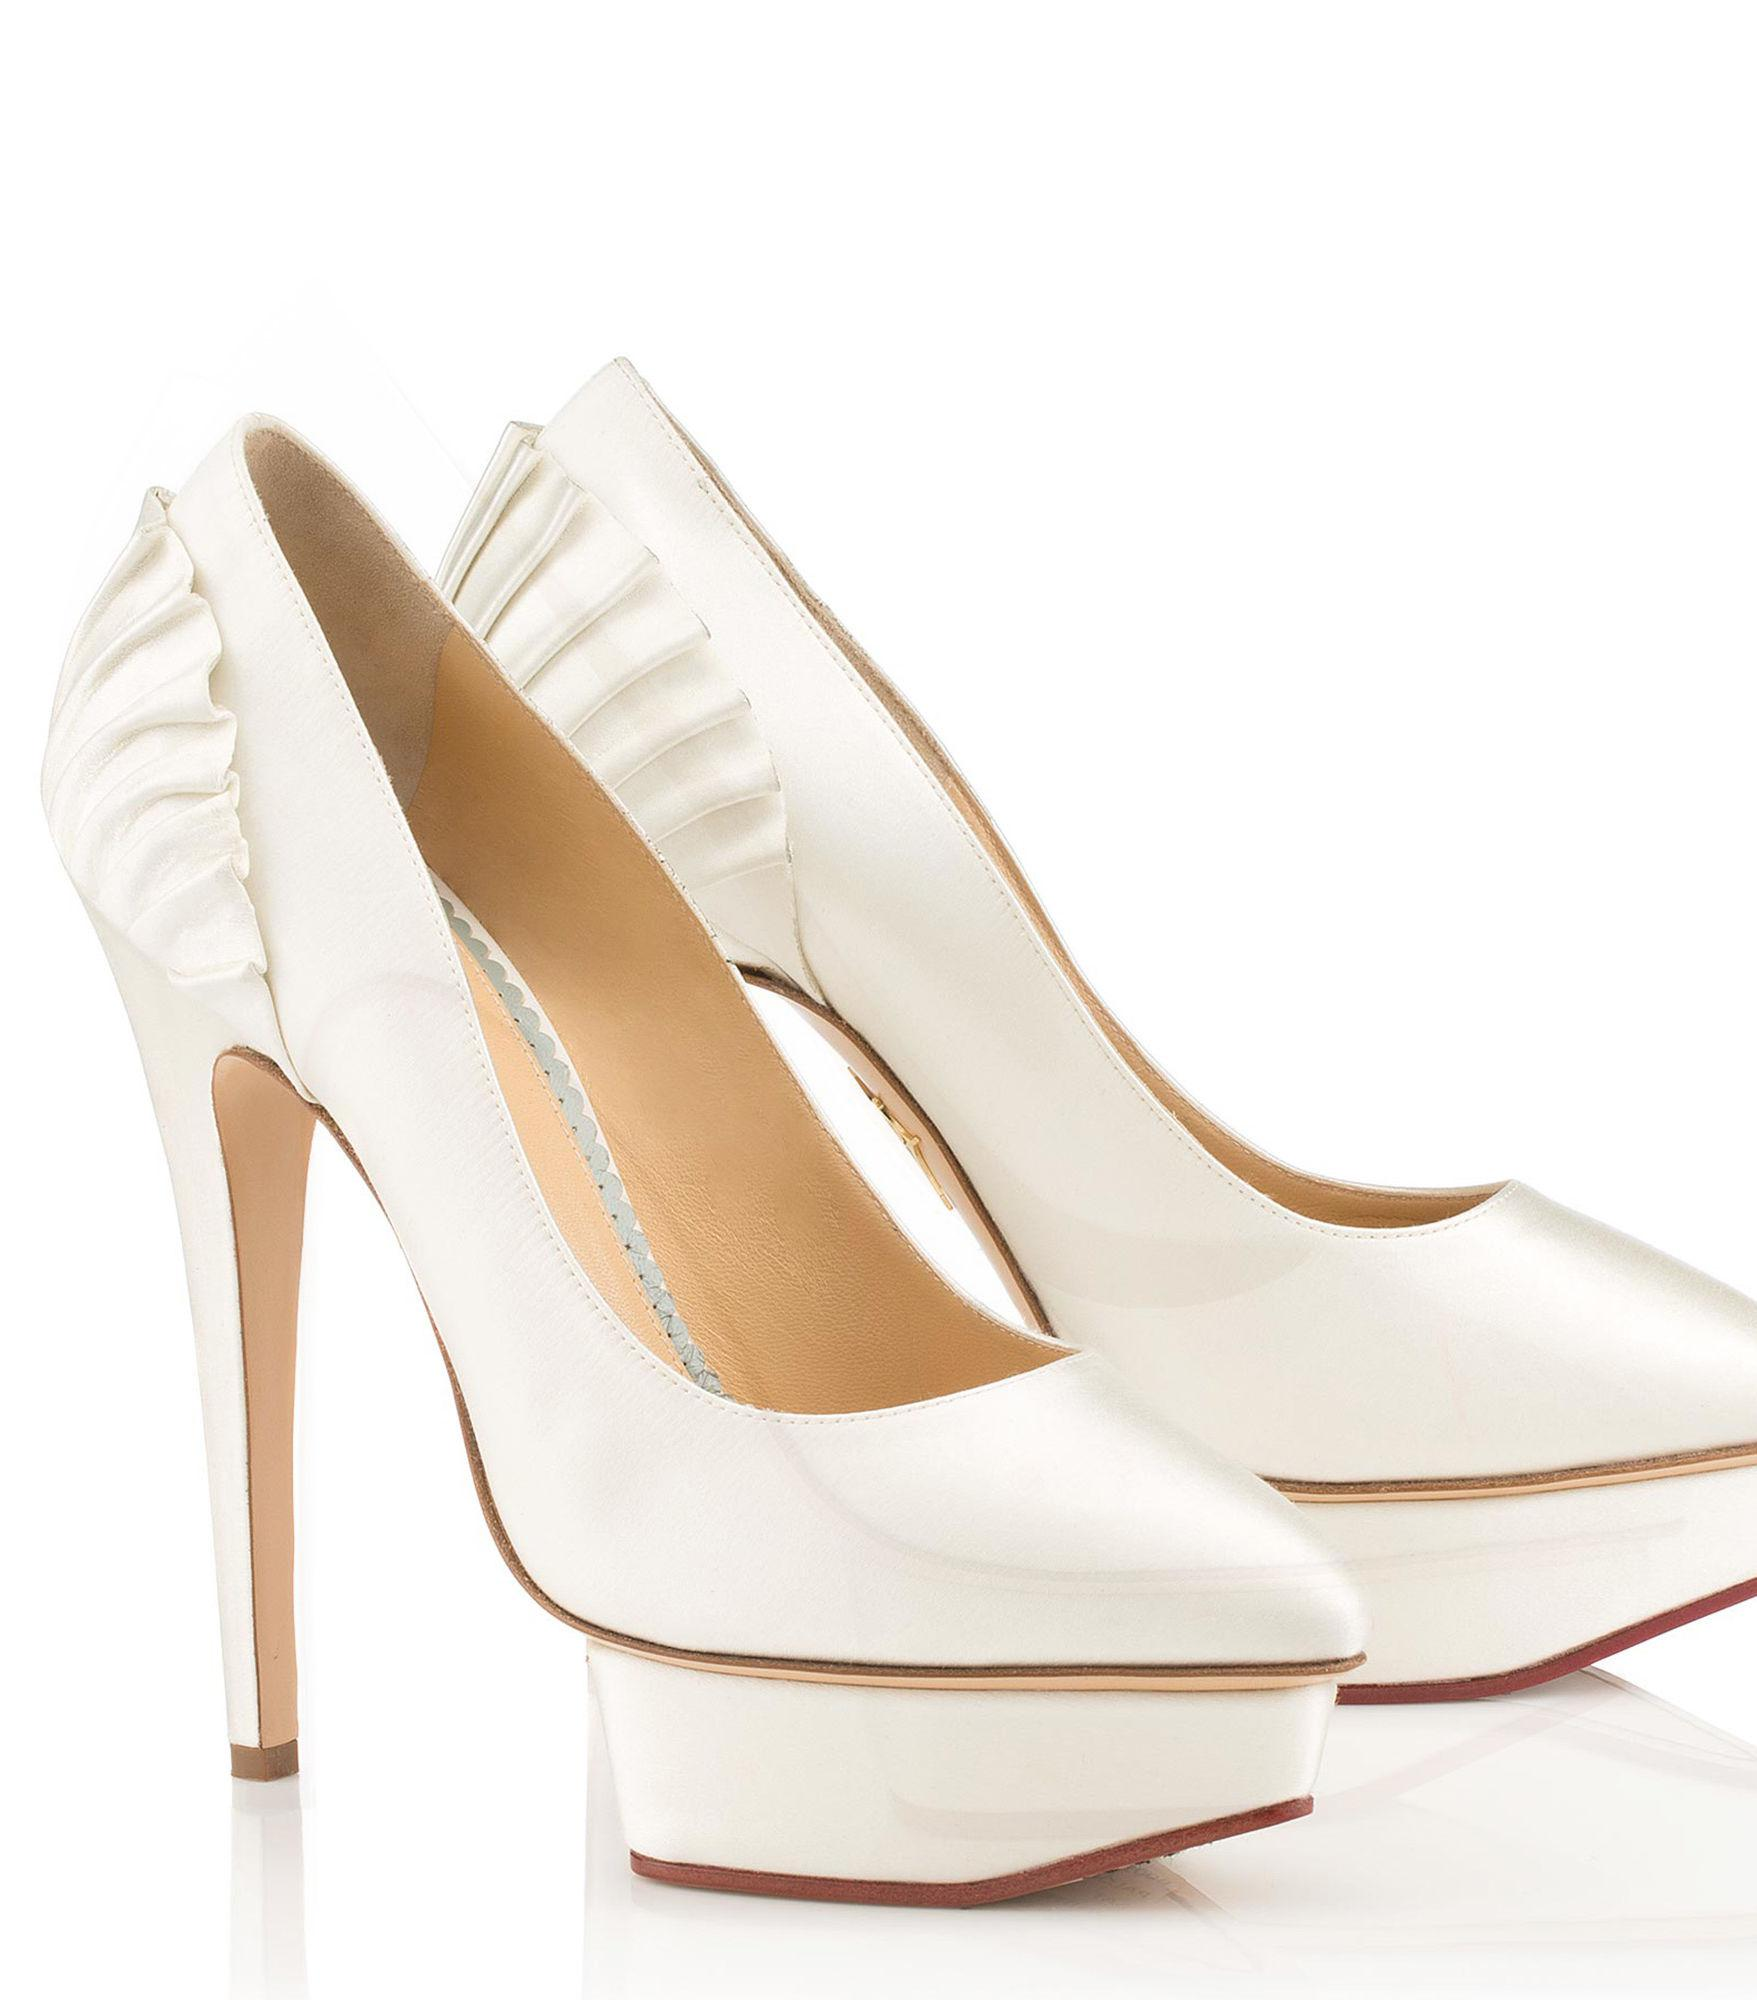 ffd7bbb60c9 Lyst - Charlotte Olympia Paloma in White